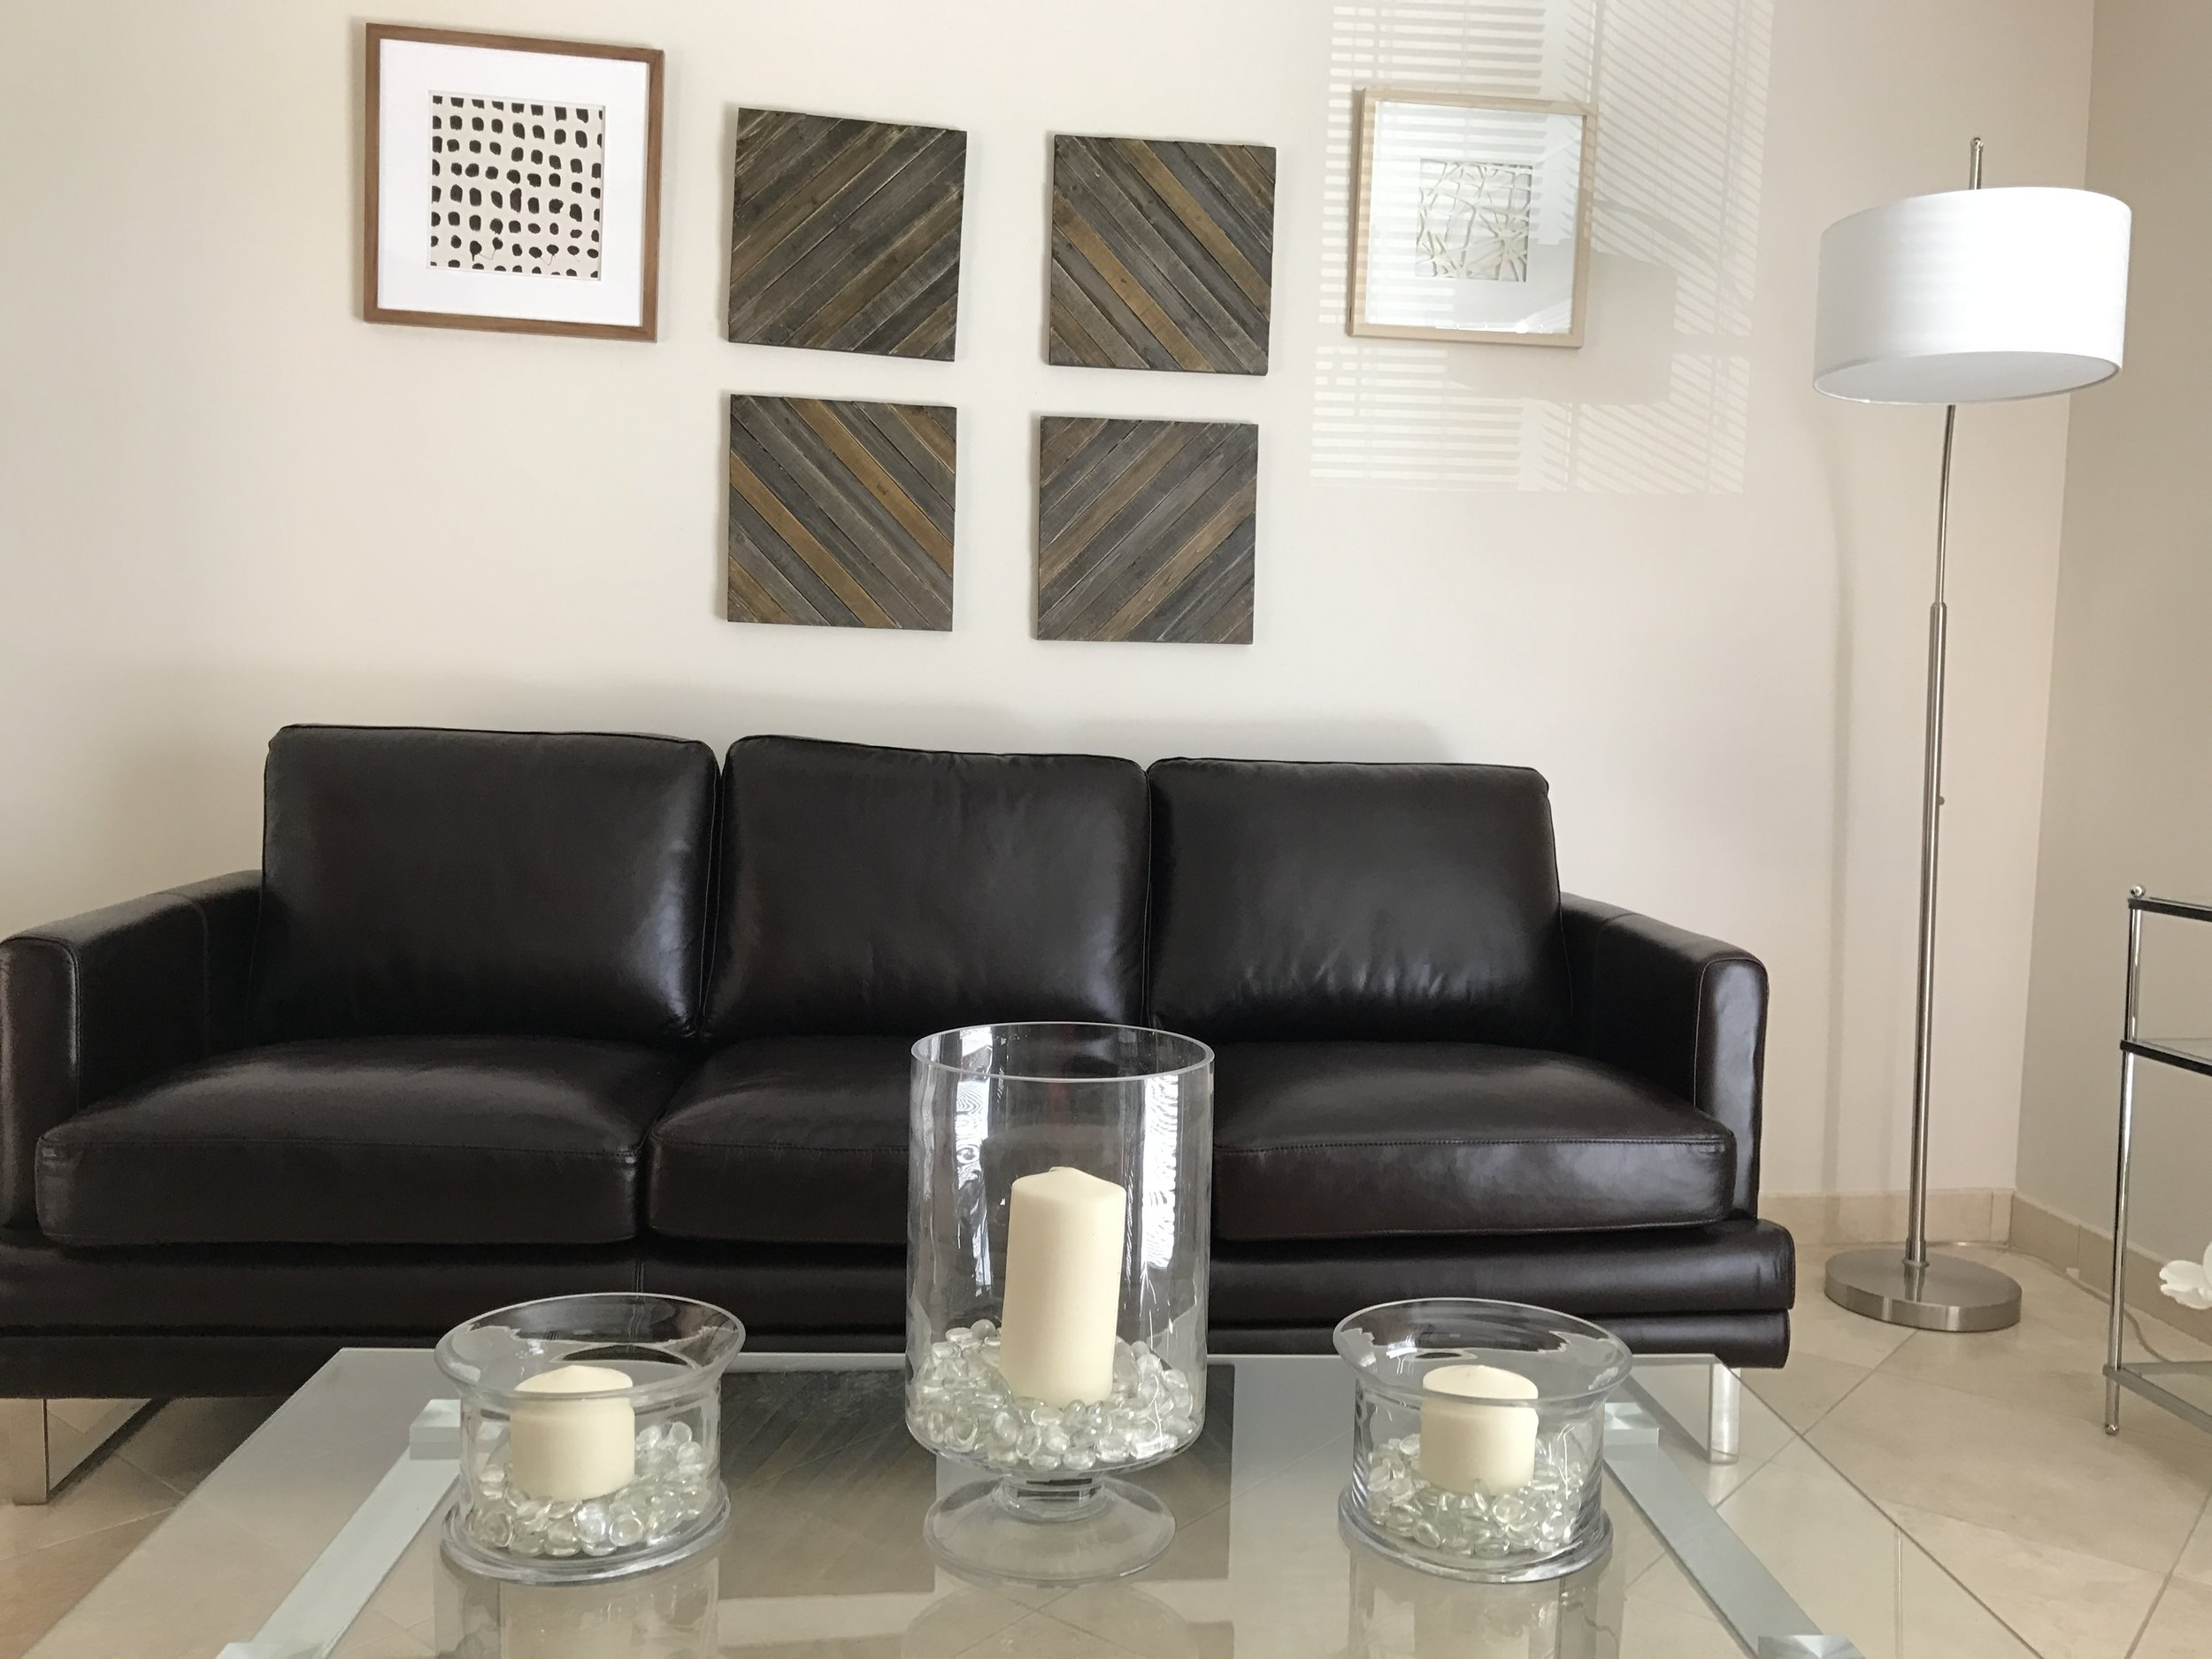 Table with candles in front of couch and wall art